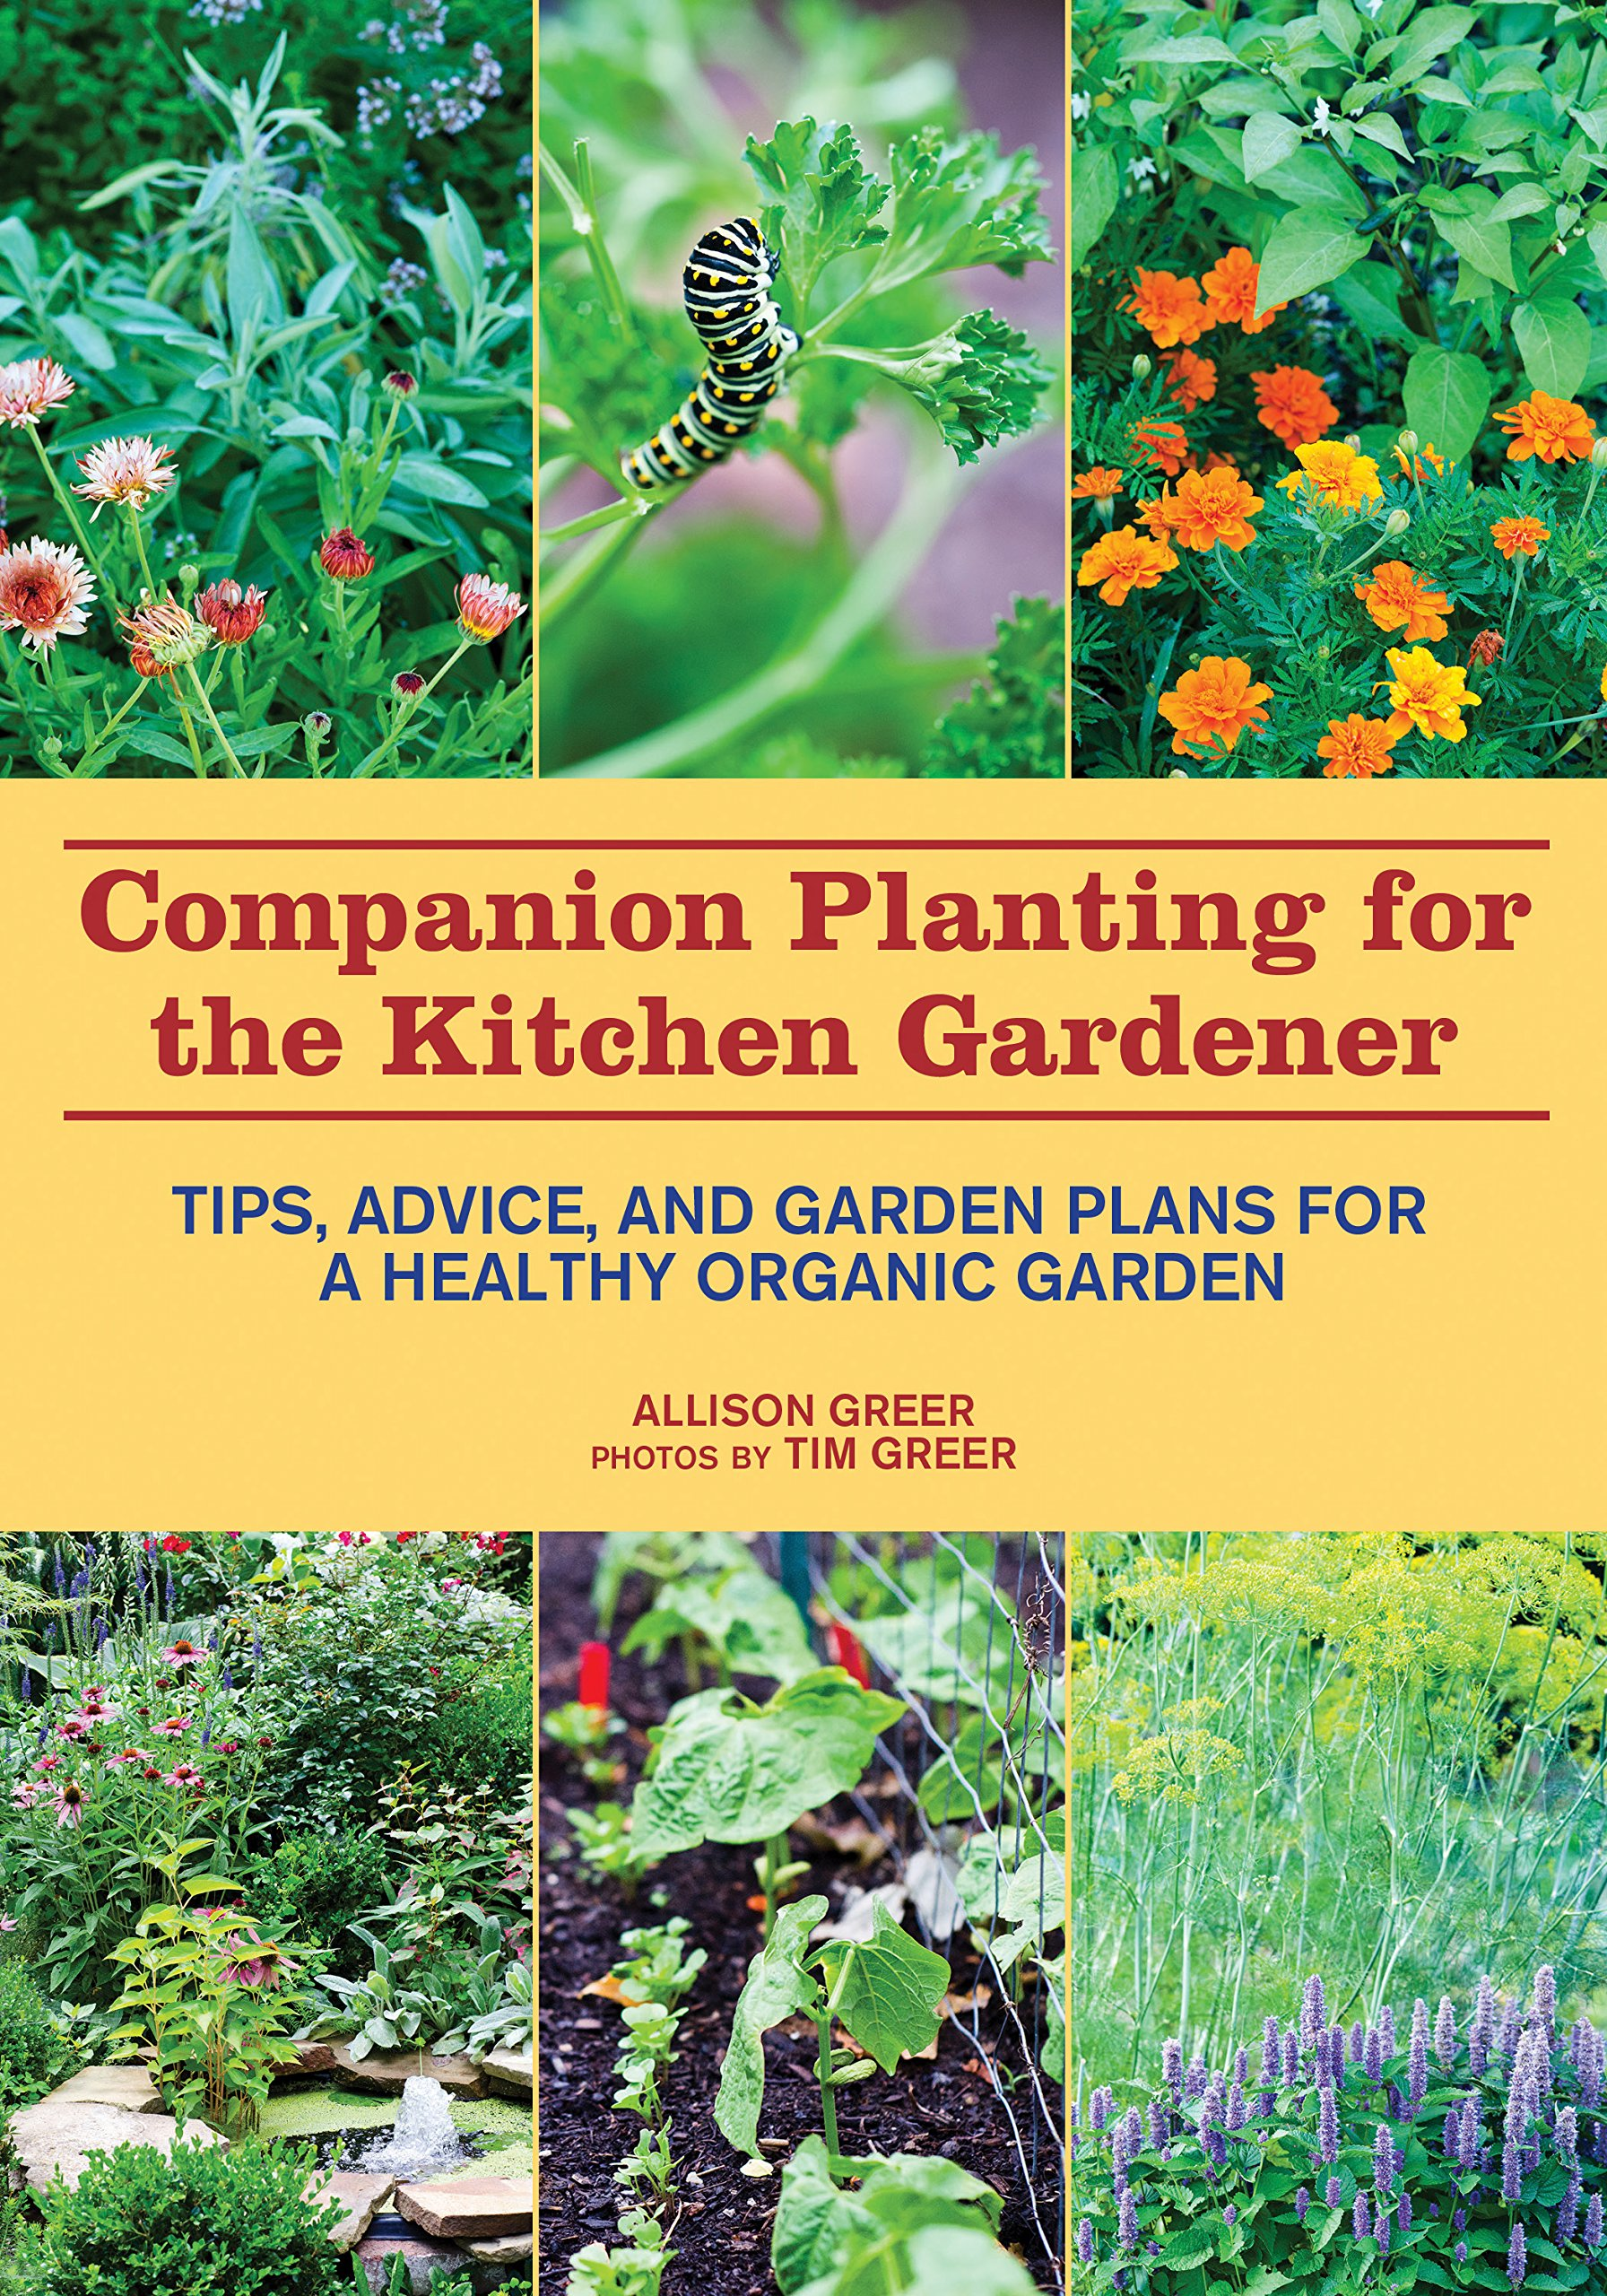 Kitchen Gardeners Companion Planting For The Kitchen Gardener Tips Advice And